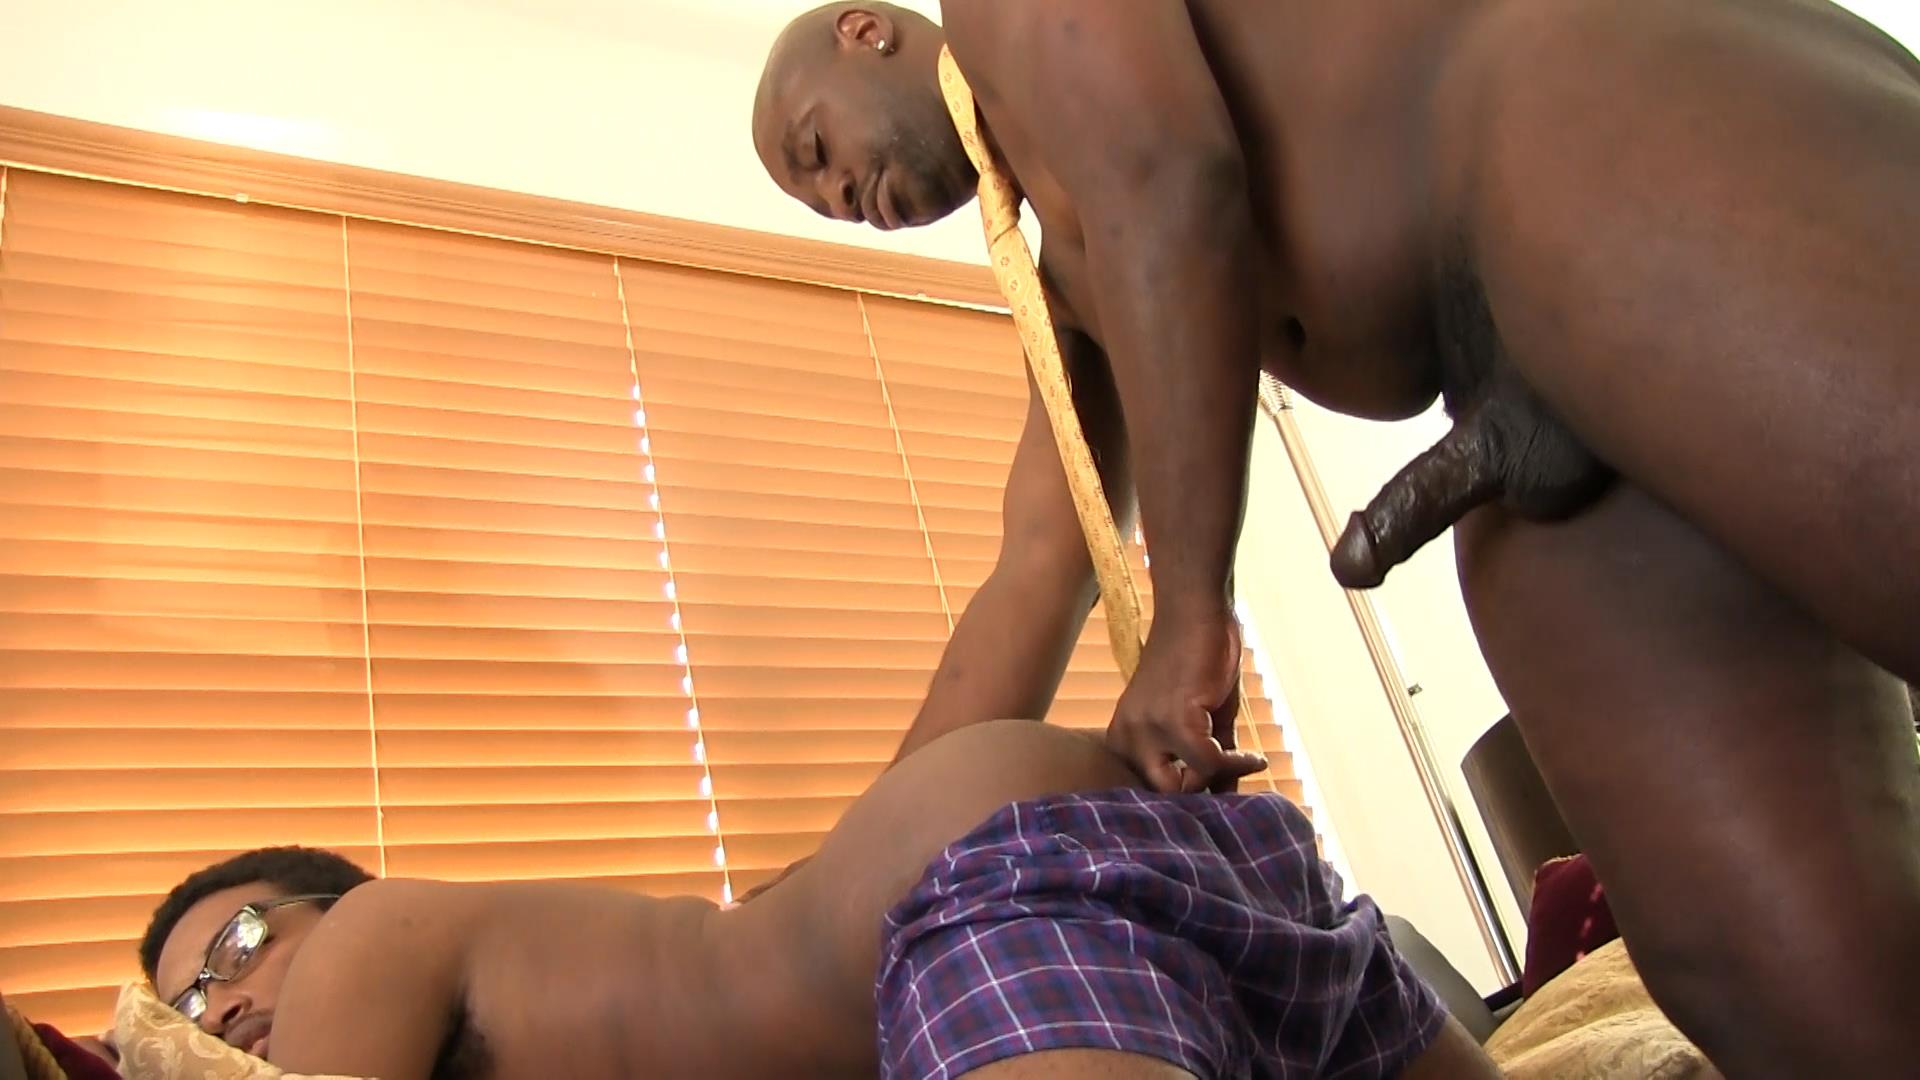 Bareback Me Daddy Daemon Sadi and Donny Ray Black Daddy Fucking A Twink Bareback Amateur Gay Porn 10